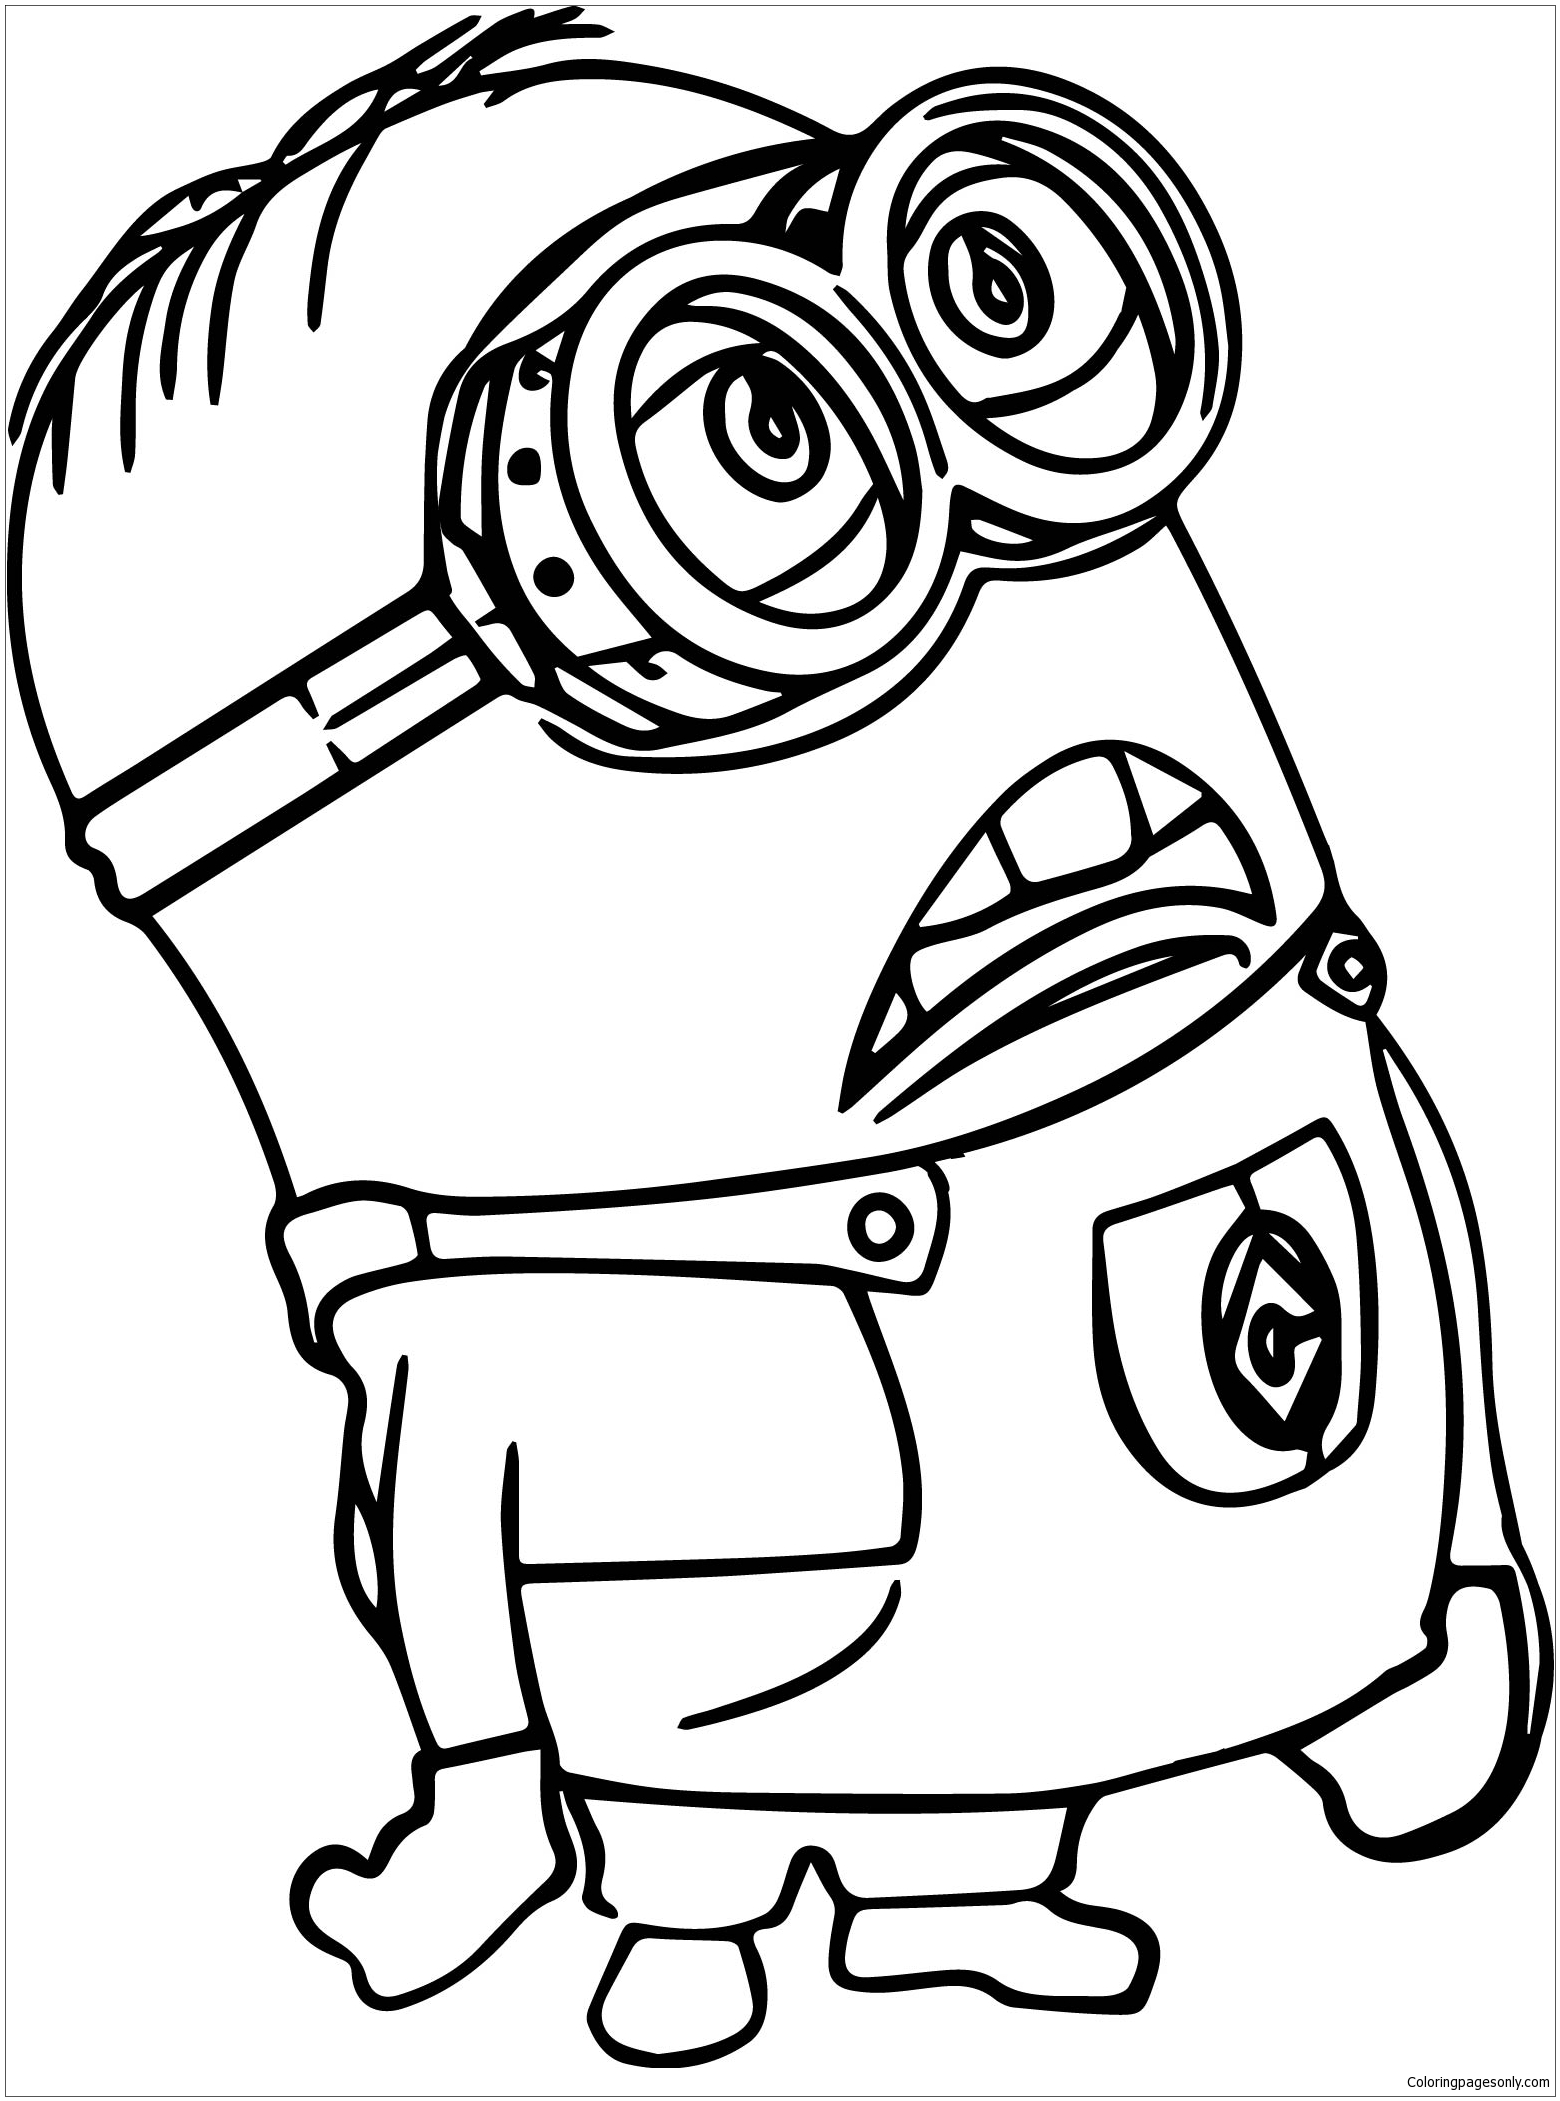 despicable me minions coloring pages to print minion coloring pages from despicable me for free coloring minions me pages despicable